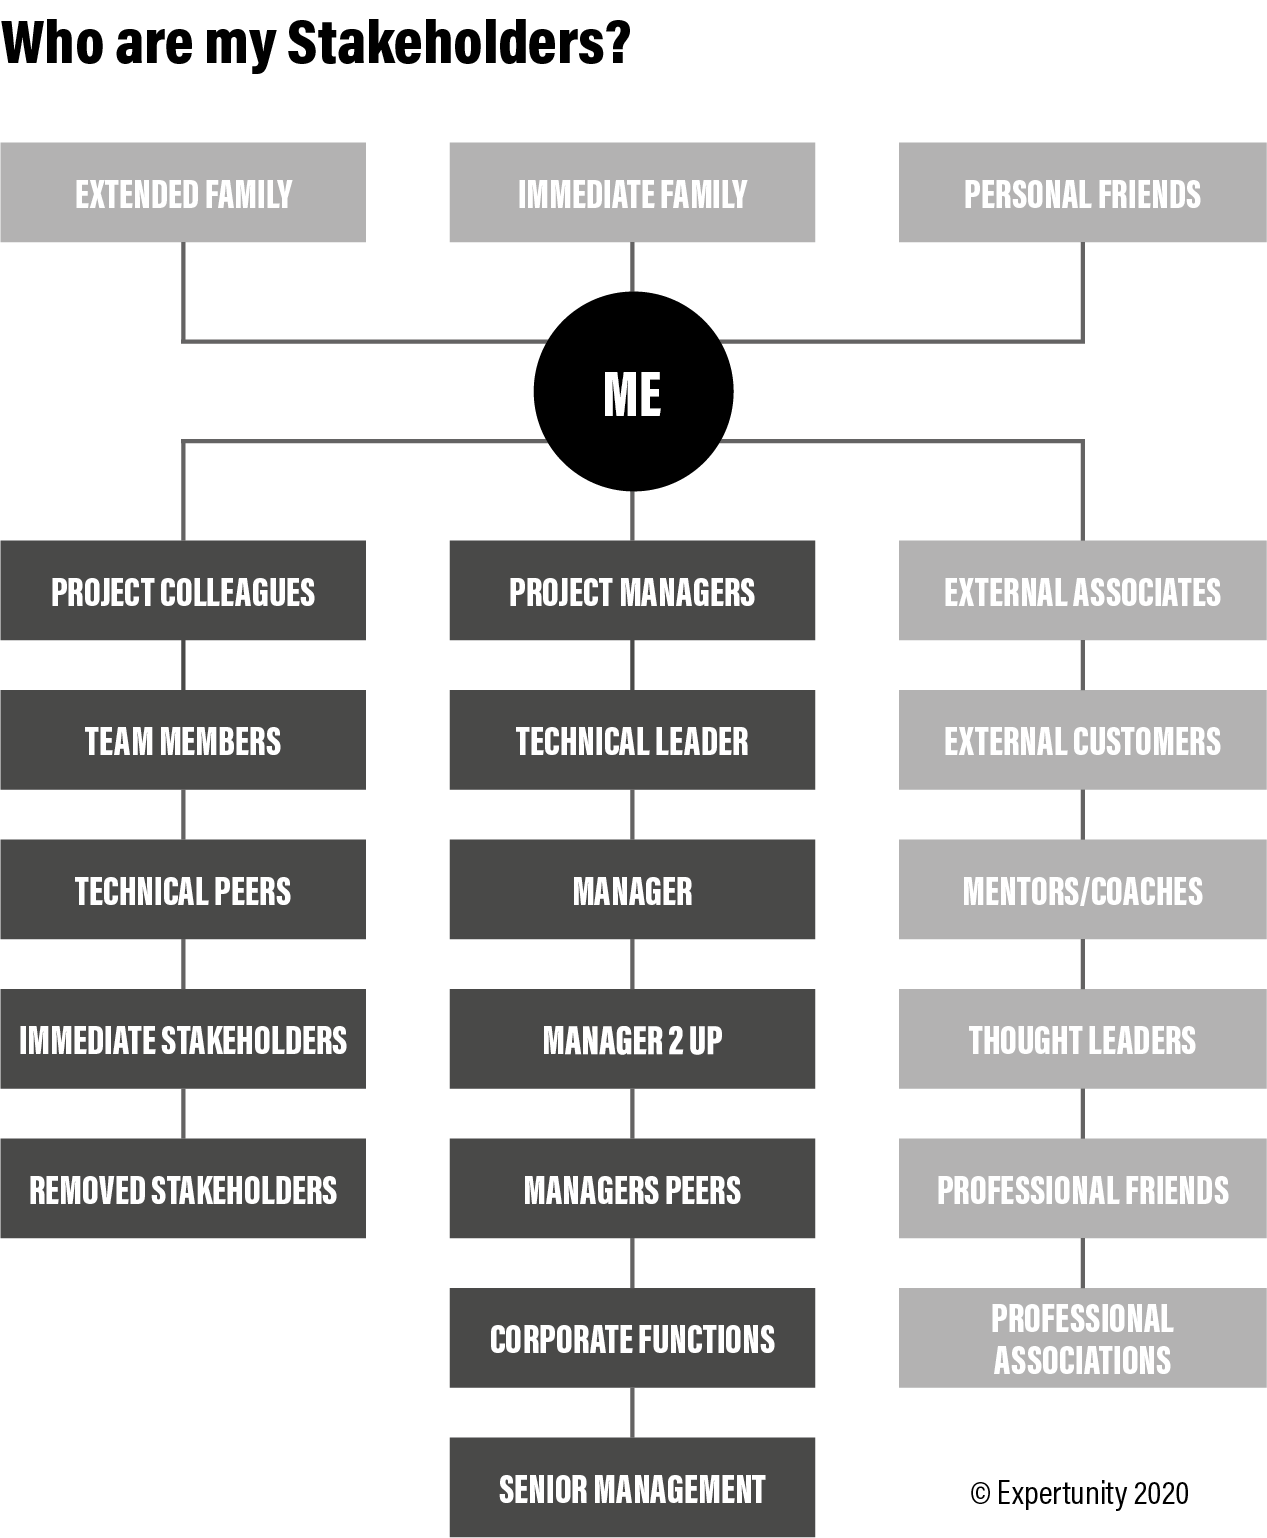 A stakeholder map